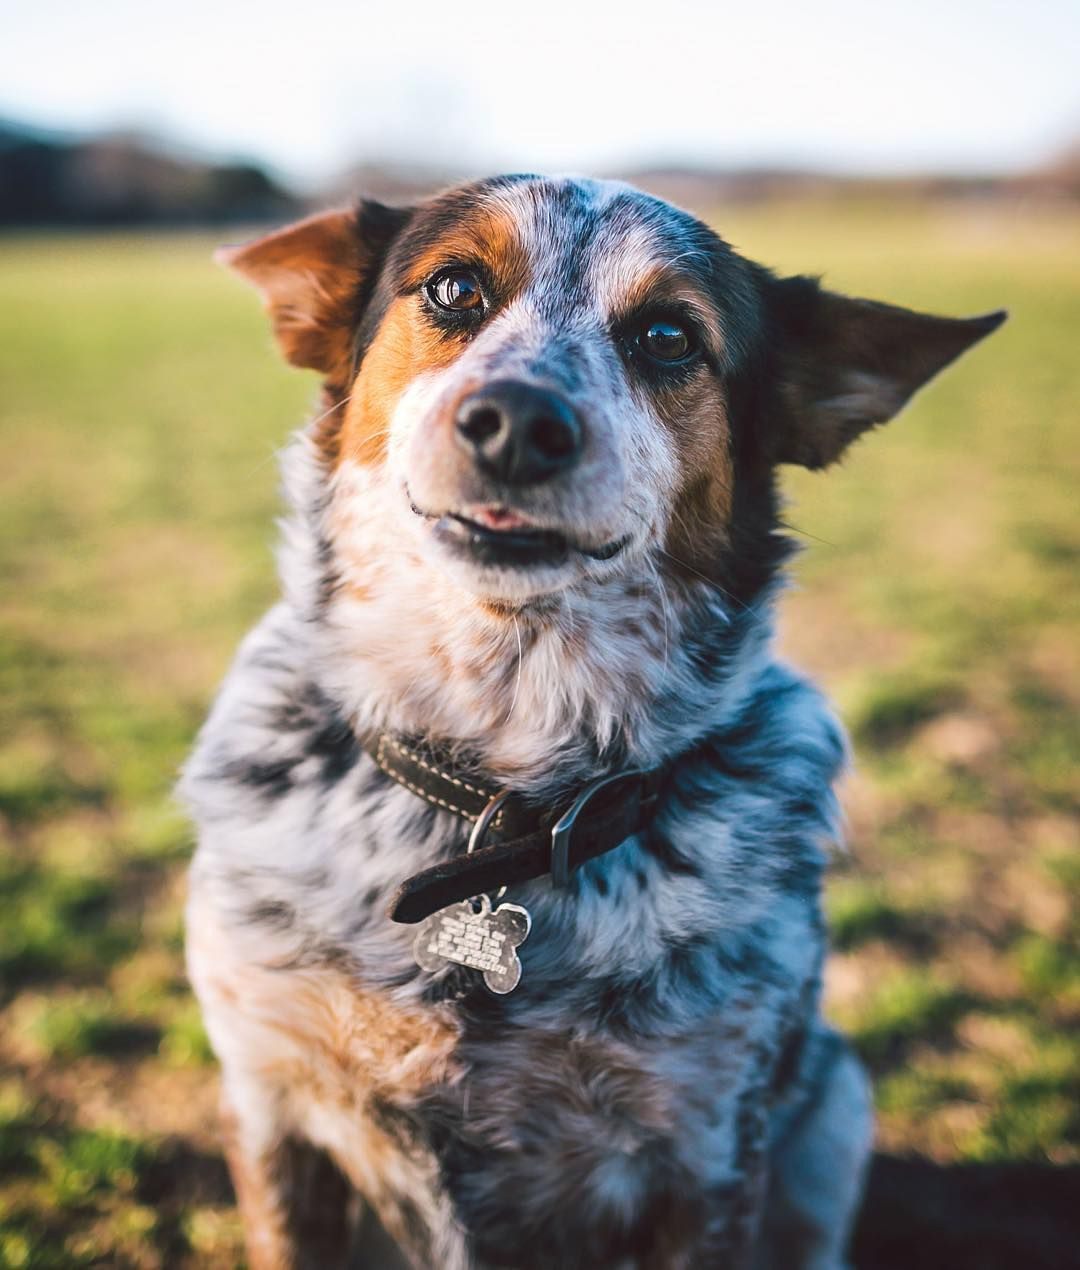 Sookie The 6yr Old Cowboy Corgi Blue Heeler Corgi Mix Probably The Greatest Mix Of All Time Zilkerbark By Zilkerbark Cowboy Corgi Corgi Mix Blue Heeler